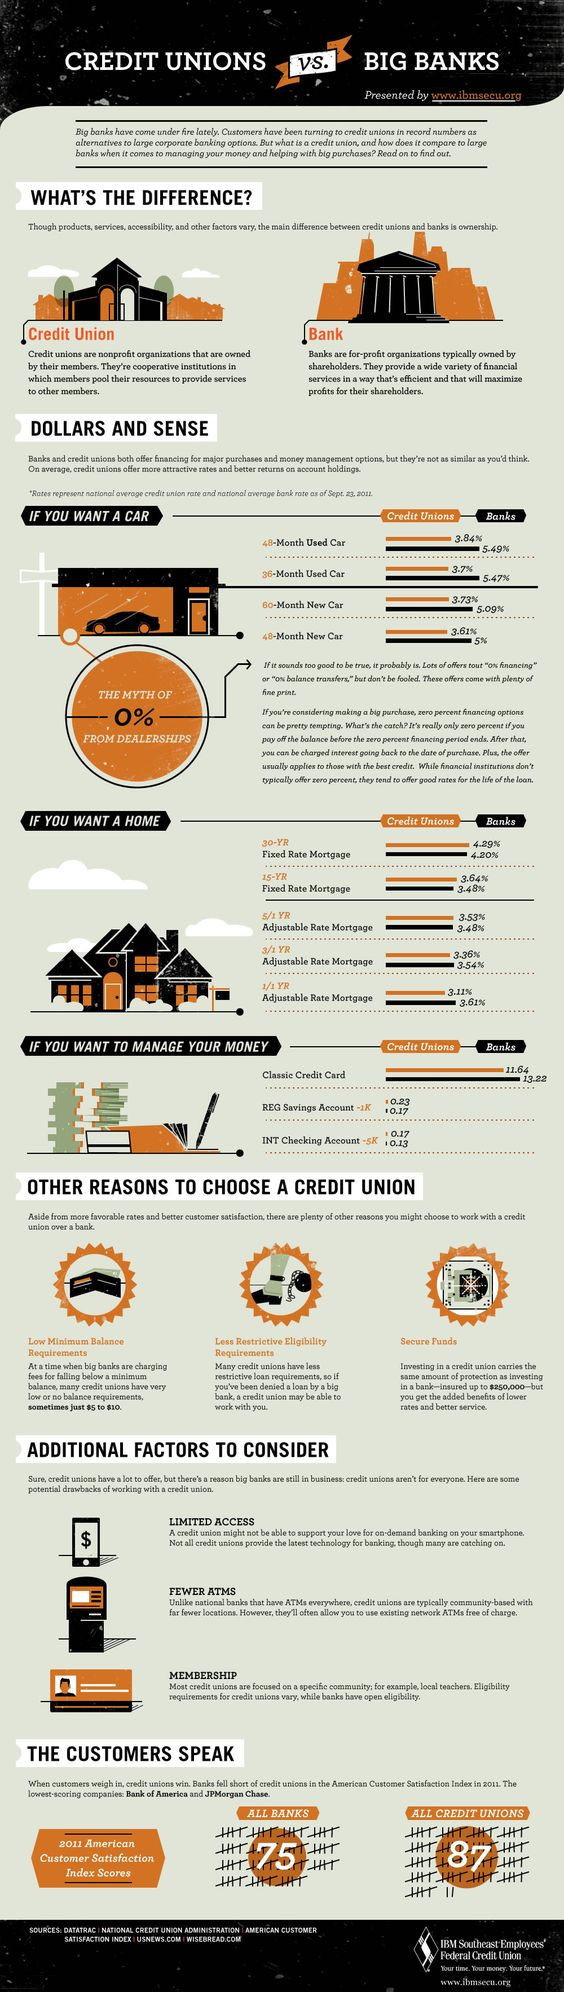 Credit Unions vs. Big Banks